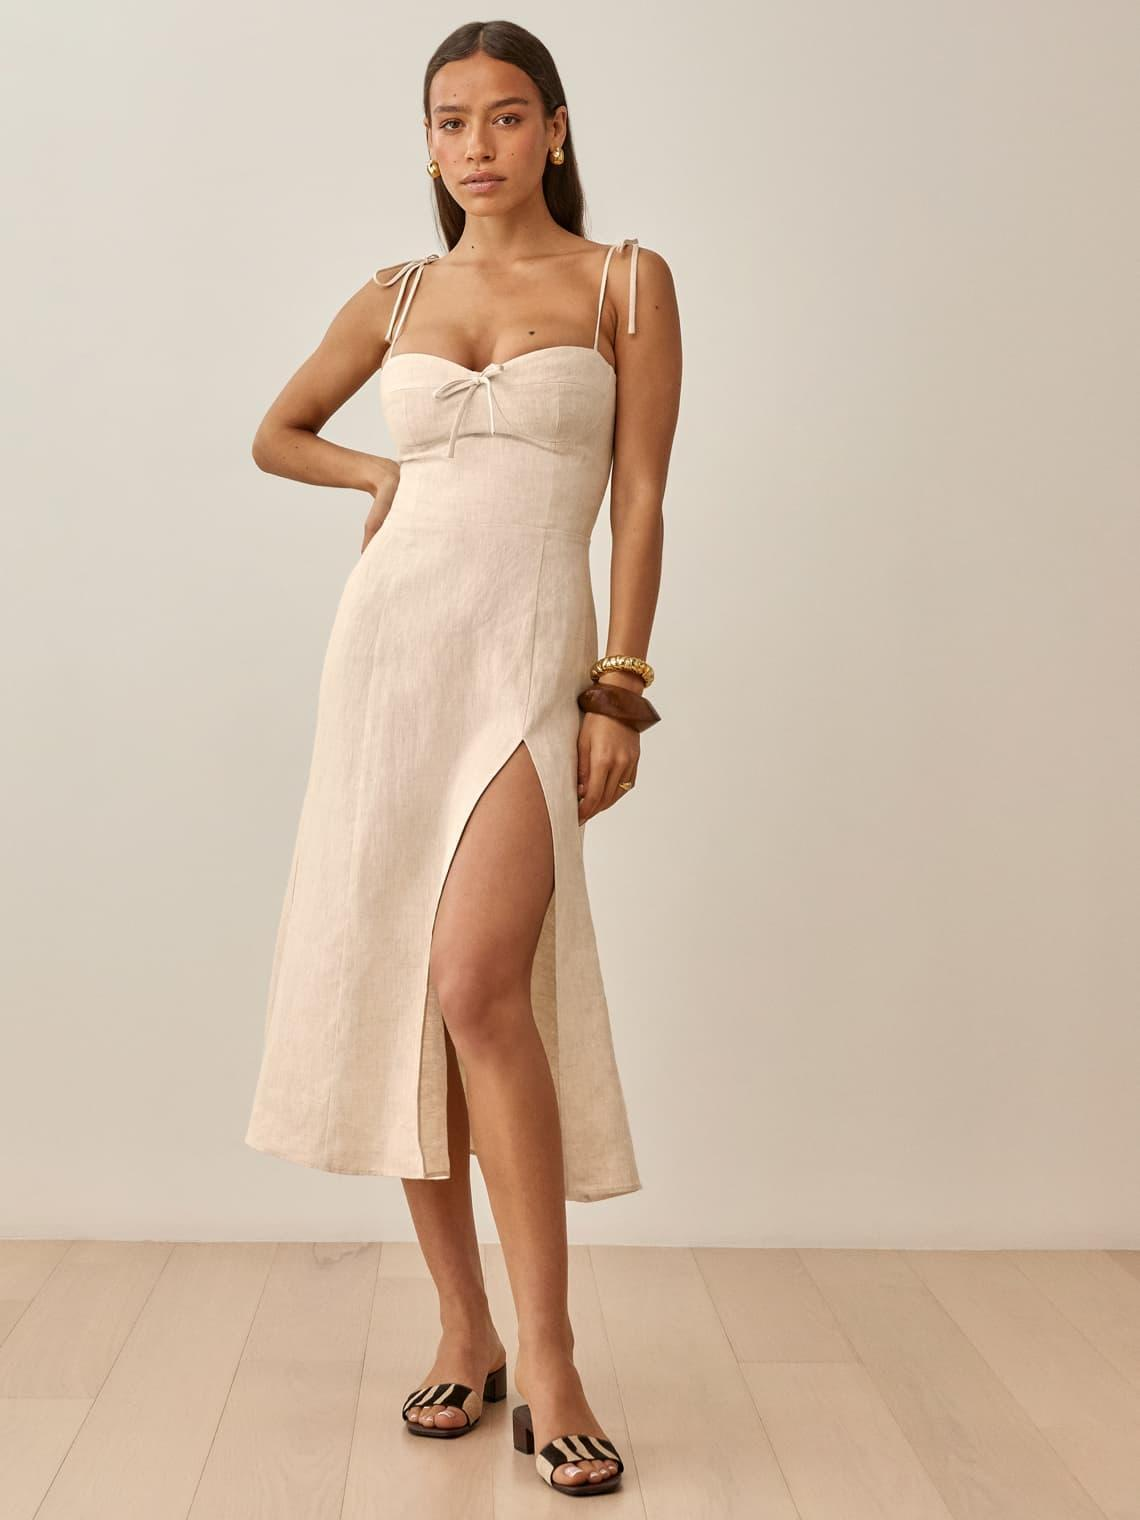 The Joyce Linen Dress comes in other neutral colours, as well as prints, but it's selling out fast.  (Reformation)